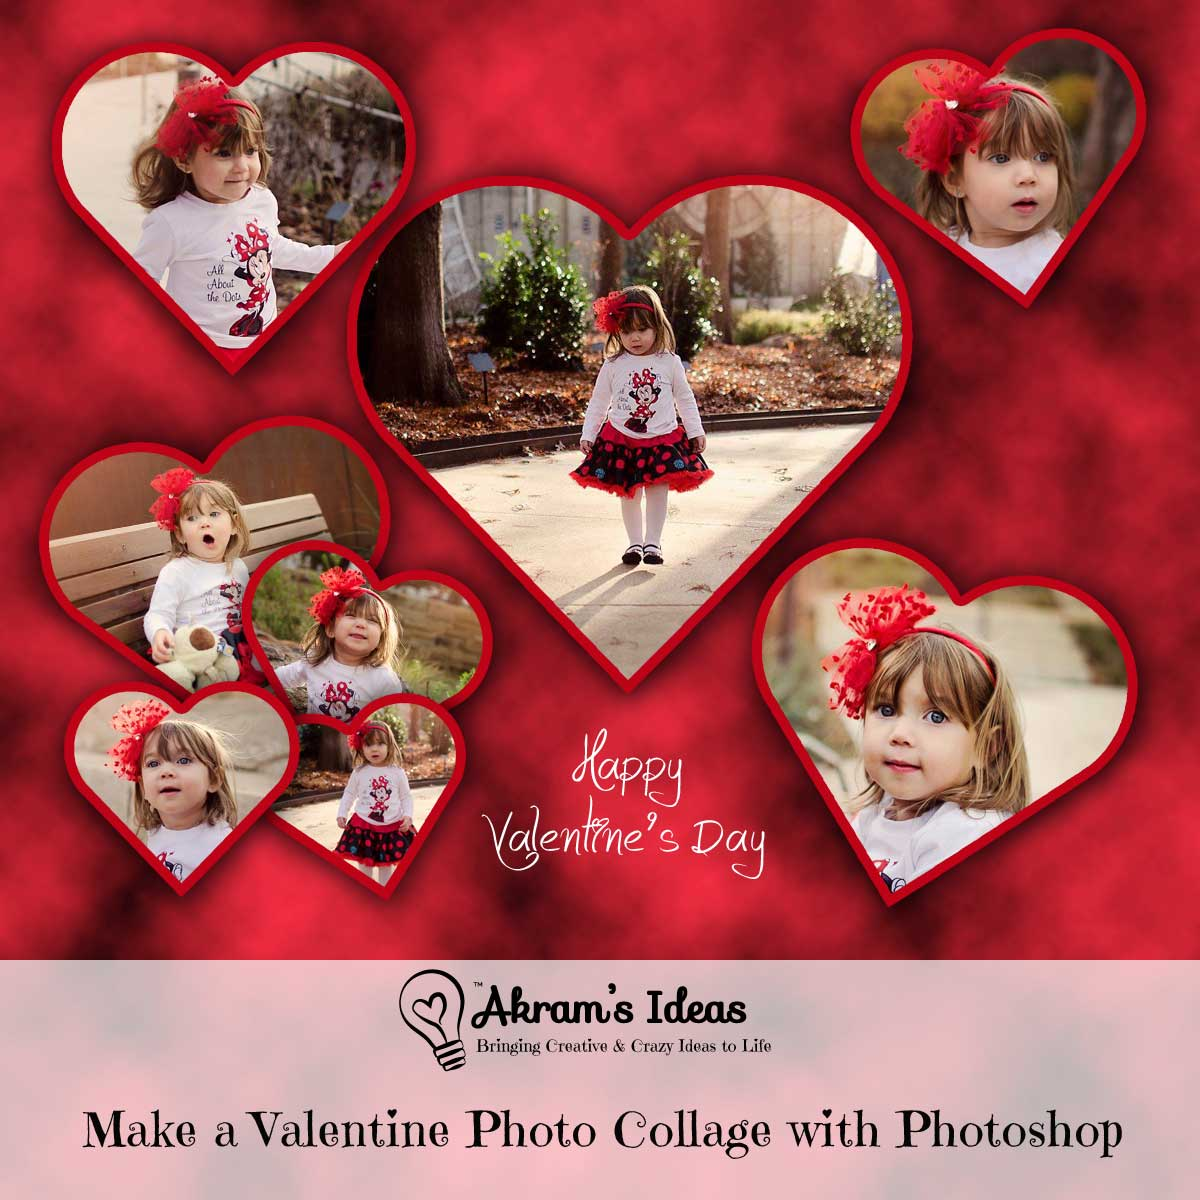 Akramu0027s Ideas: Make A Valentine Photo Collage With Photoshop